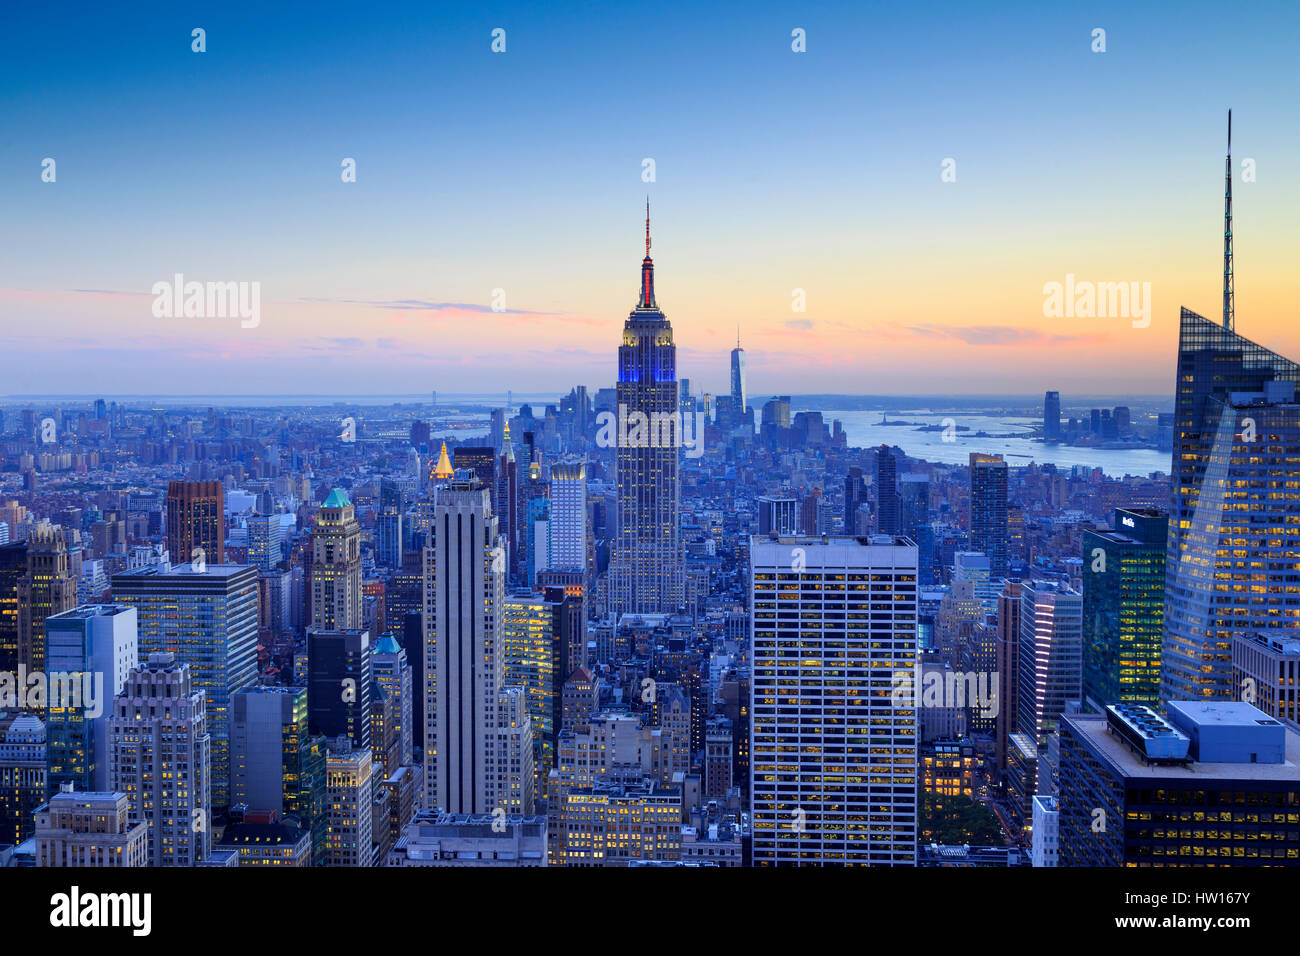 USA, New York, Manhattan, Top of the Rock Observatory, Midtown Manhattan and Empire State Building - Stock Image